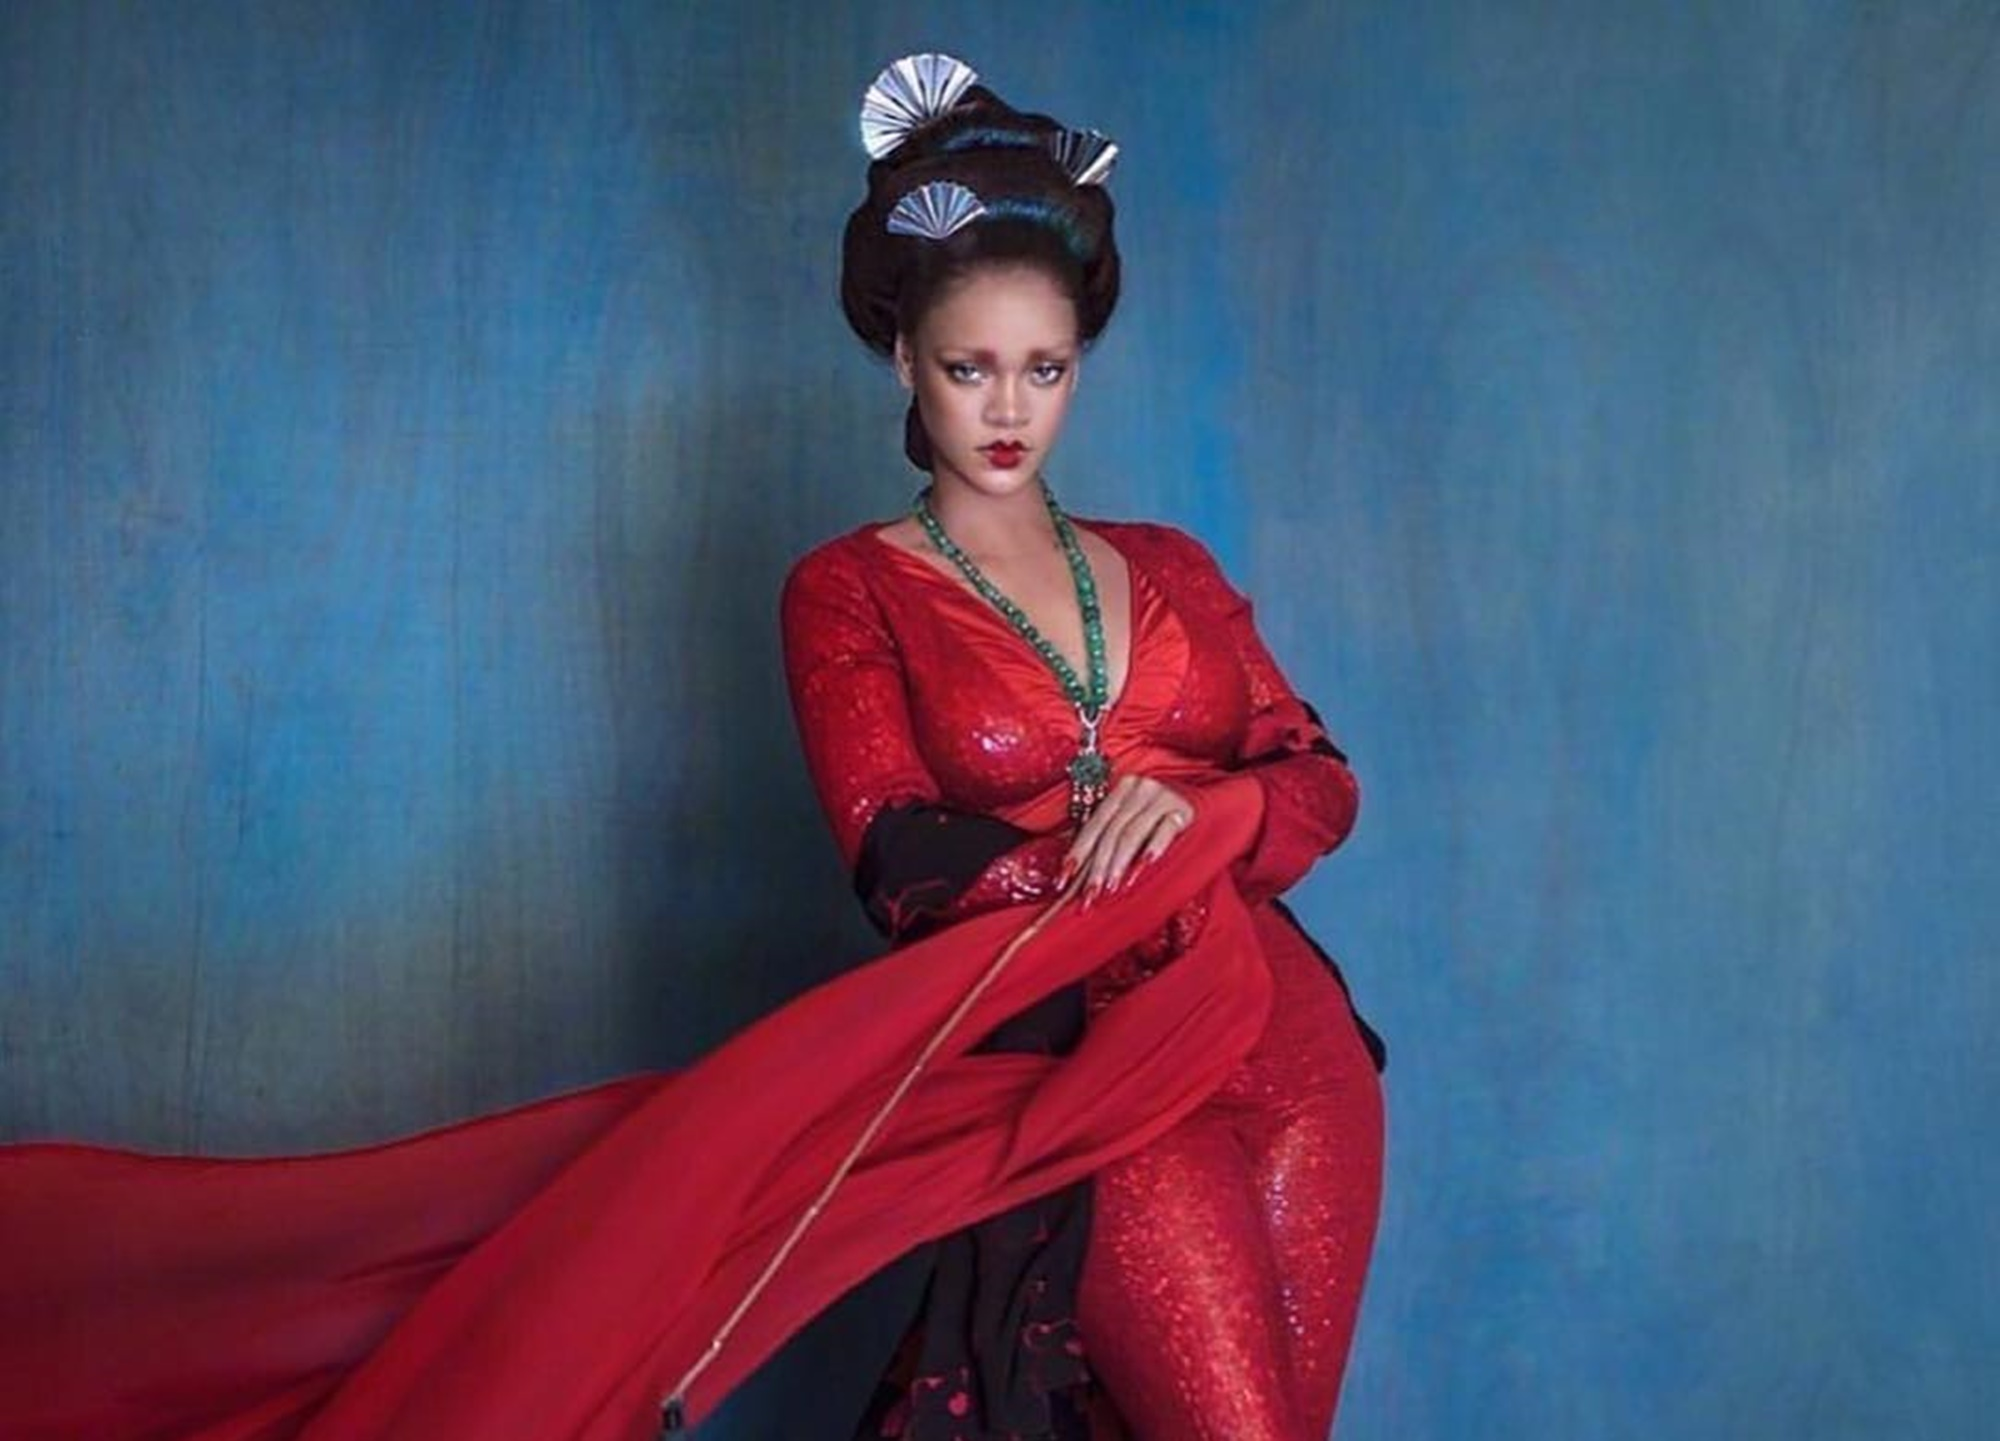 """rihanna-looks-like-a-real-life-painting-in-new-photos-critics-see-cultural-appropriation-did-hassan-jameels-gf-do-something-wrong"""